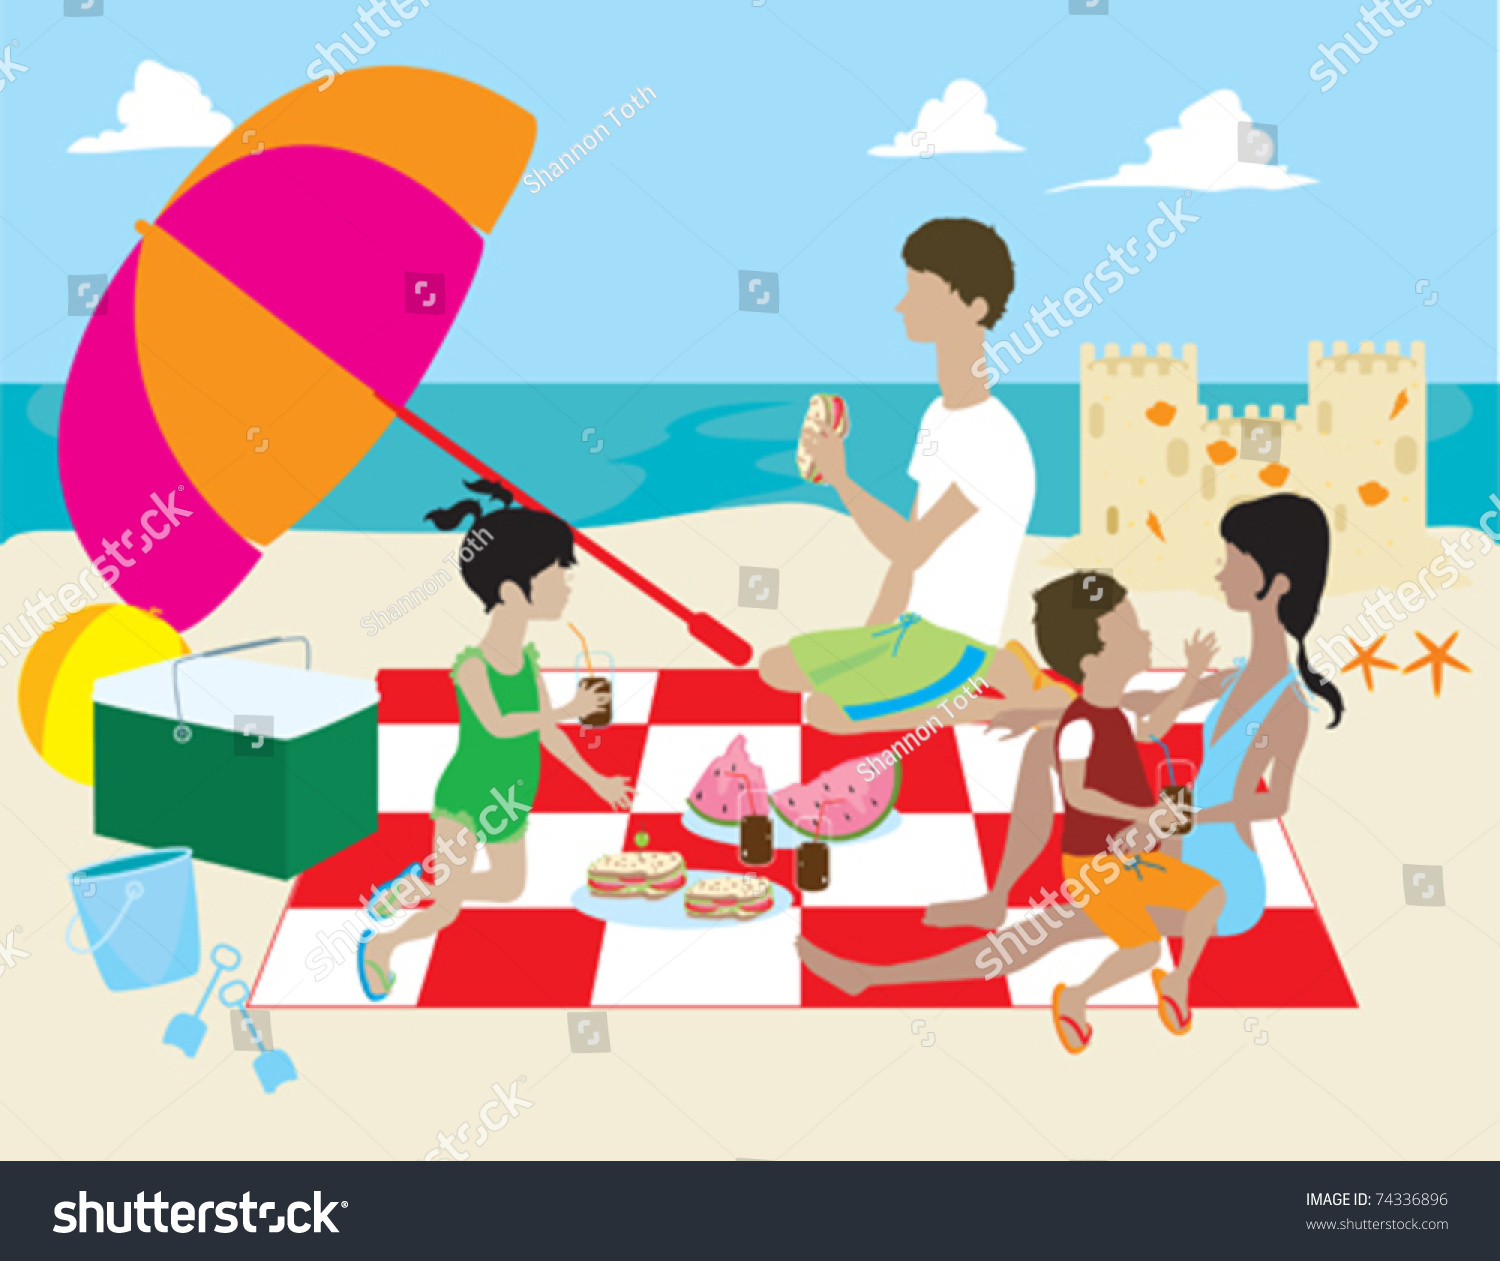 essay picnic with family at the beach Essay on picnic with my family 502 words essay on family picnic worlds largest , picnics are the best way to enjoy english essays: a picnic by the beach.